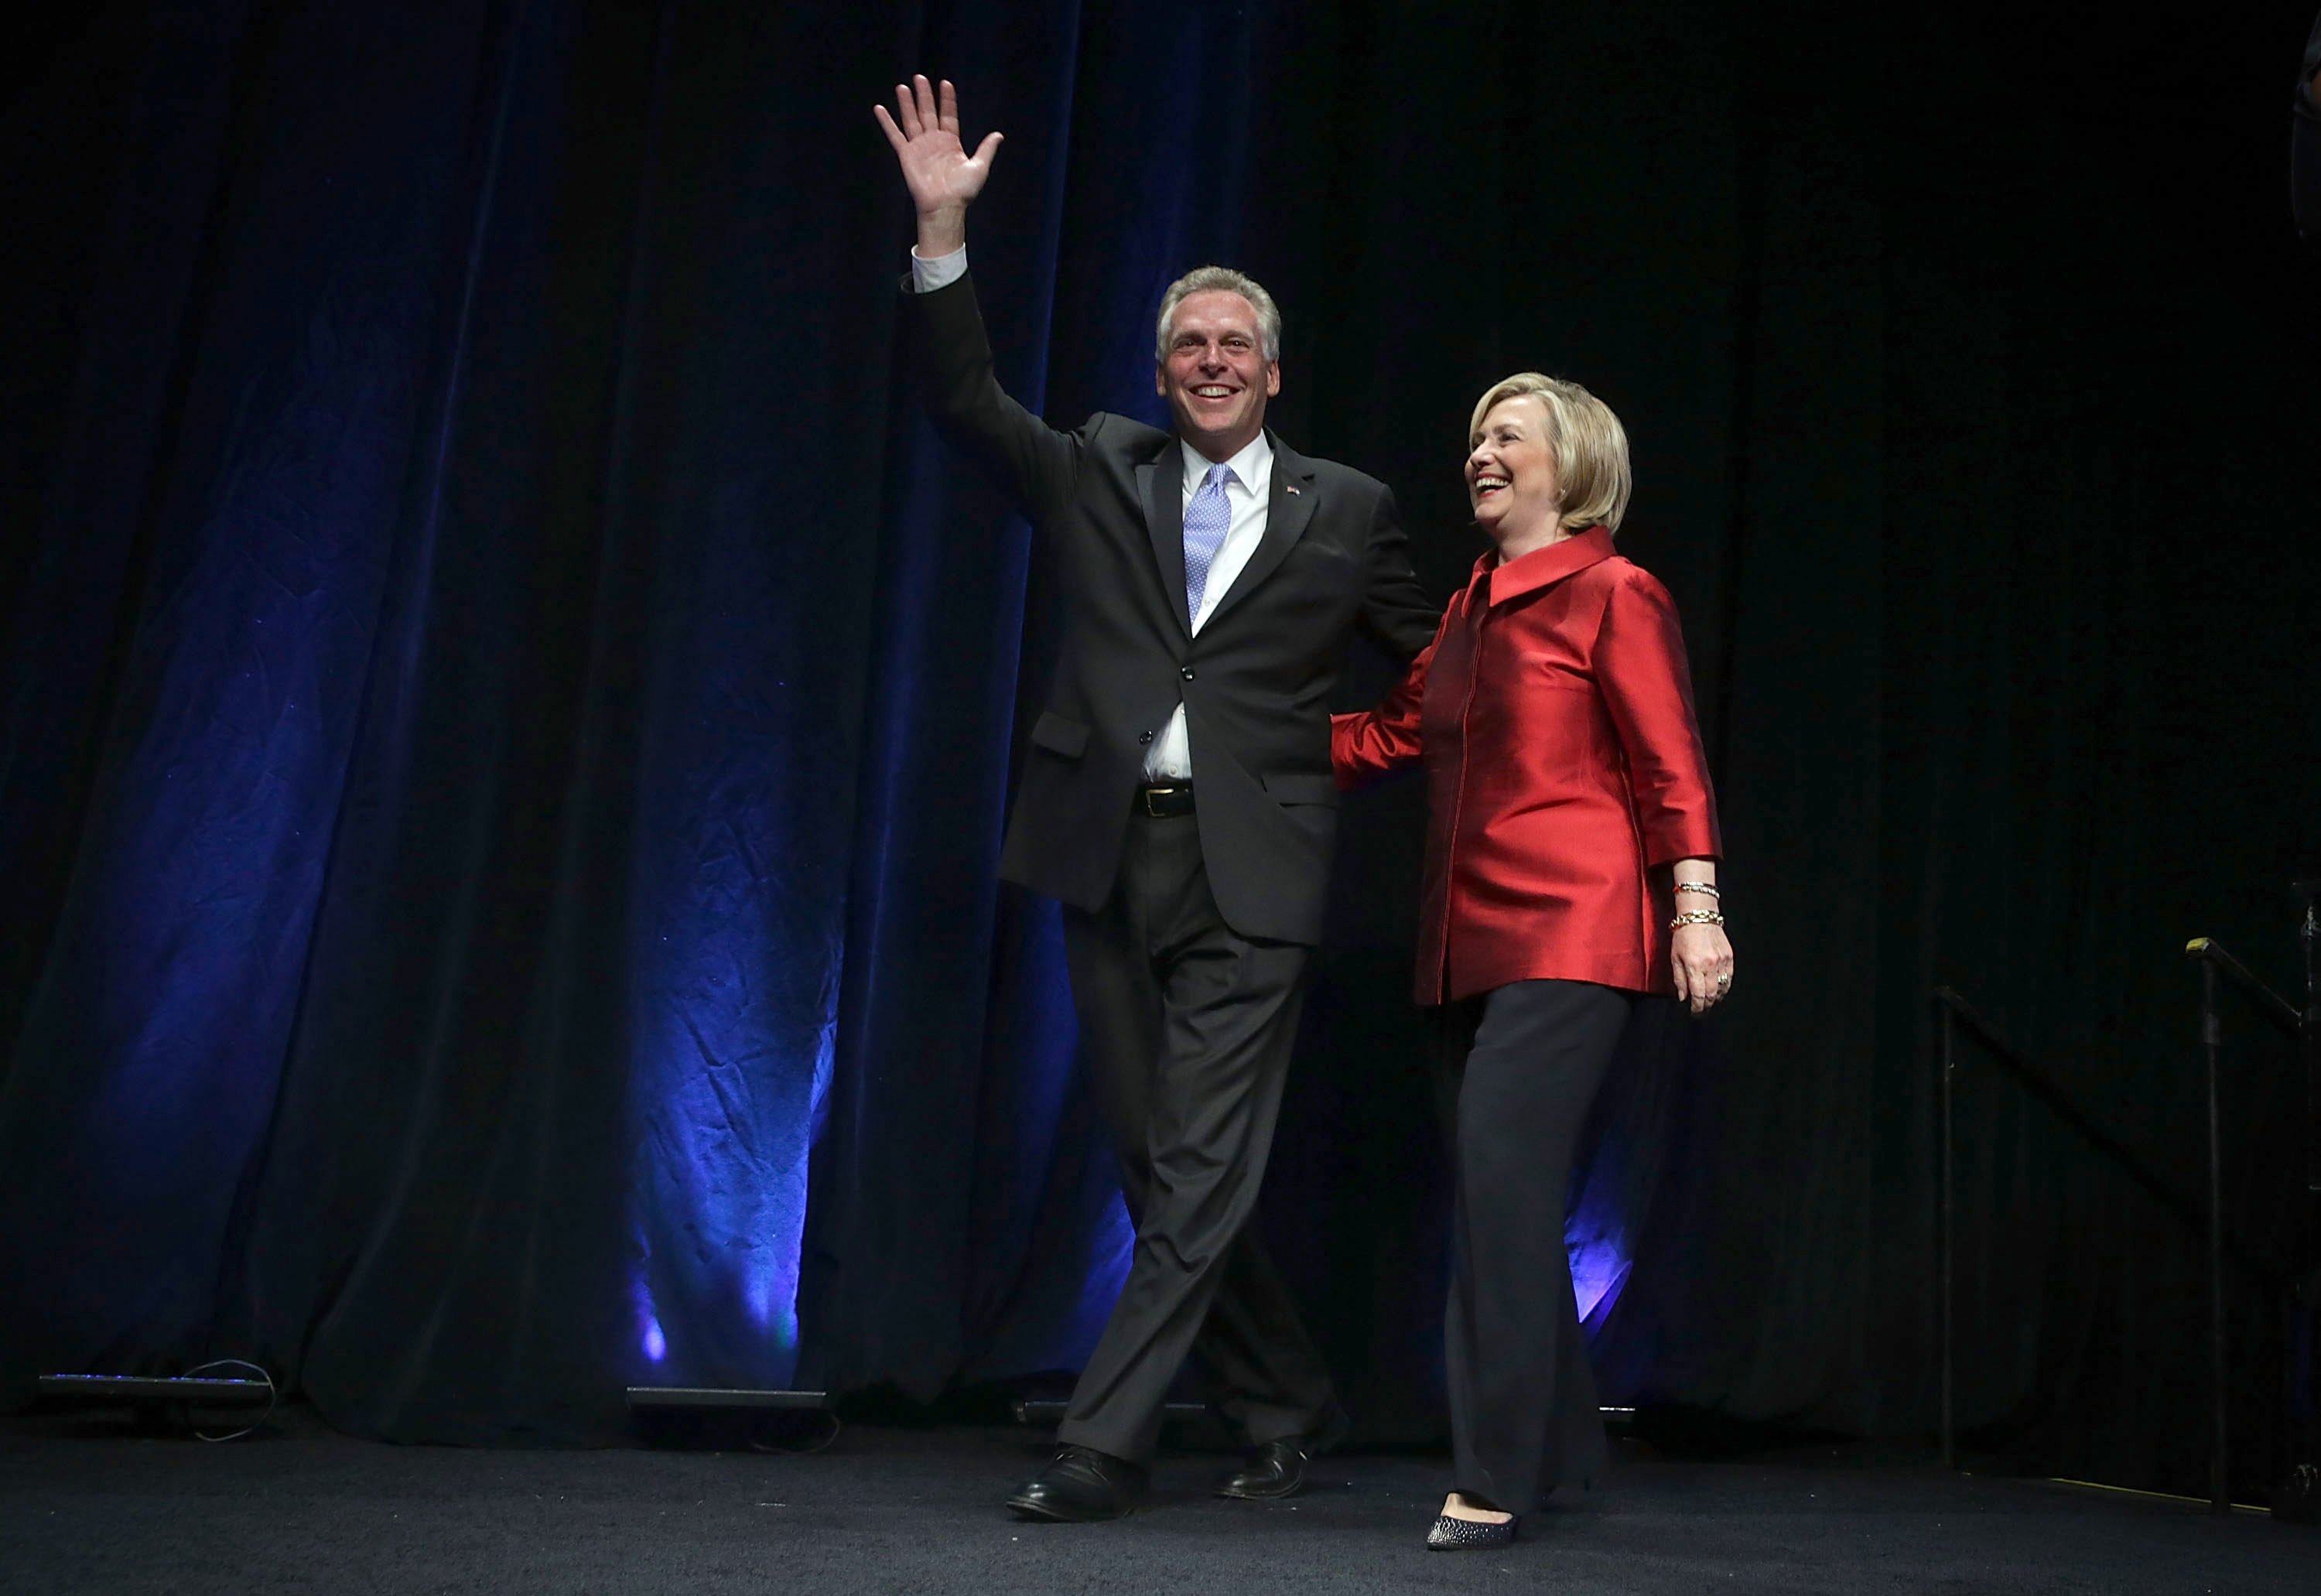 Democratic U.S. presidential hopeful and former U.S. Secretary of the State Hillary Clinton comes on the stage with Virginia Governor Terry McAuliffe during the Democratic Party of Virginia Jefferson-Jackson dinner June 26, 2015 at George Mason University's Patriot Center in Fairfax, Virginia.